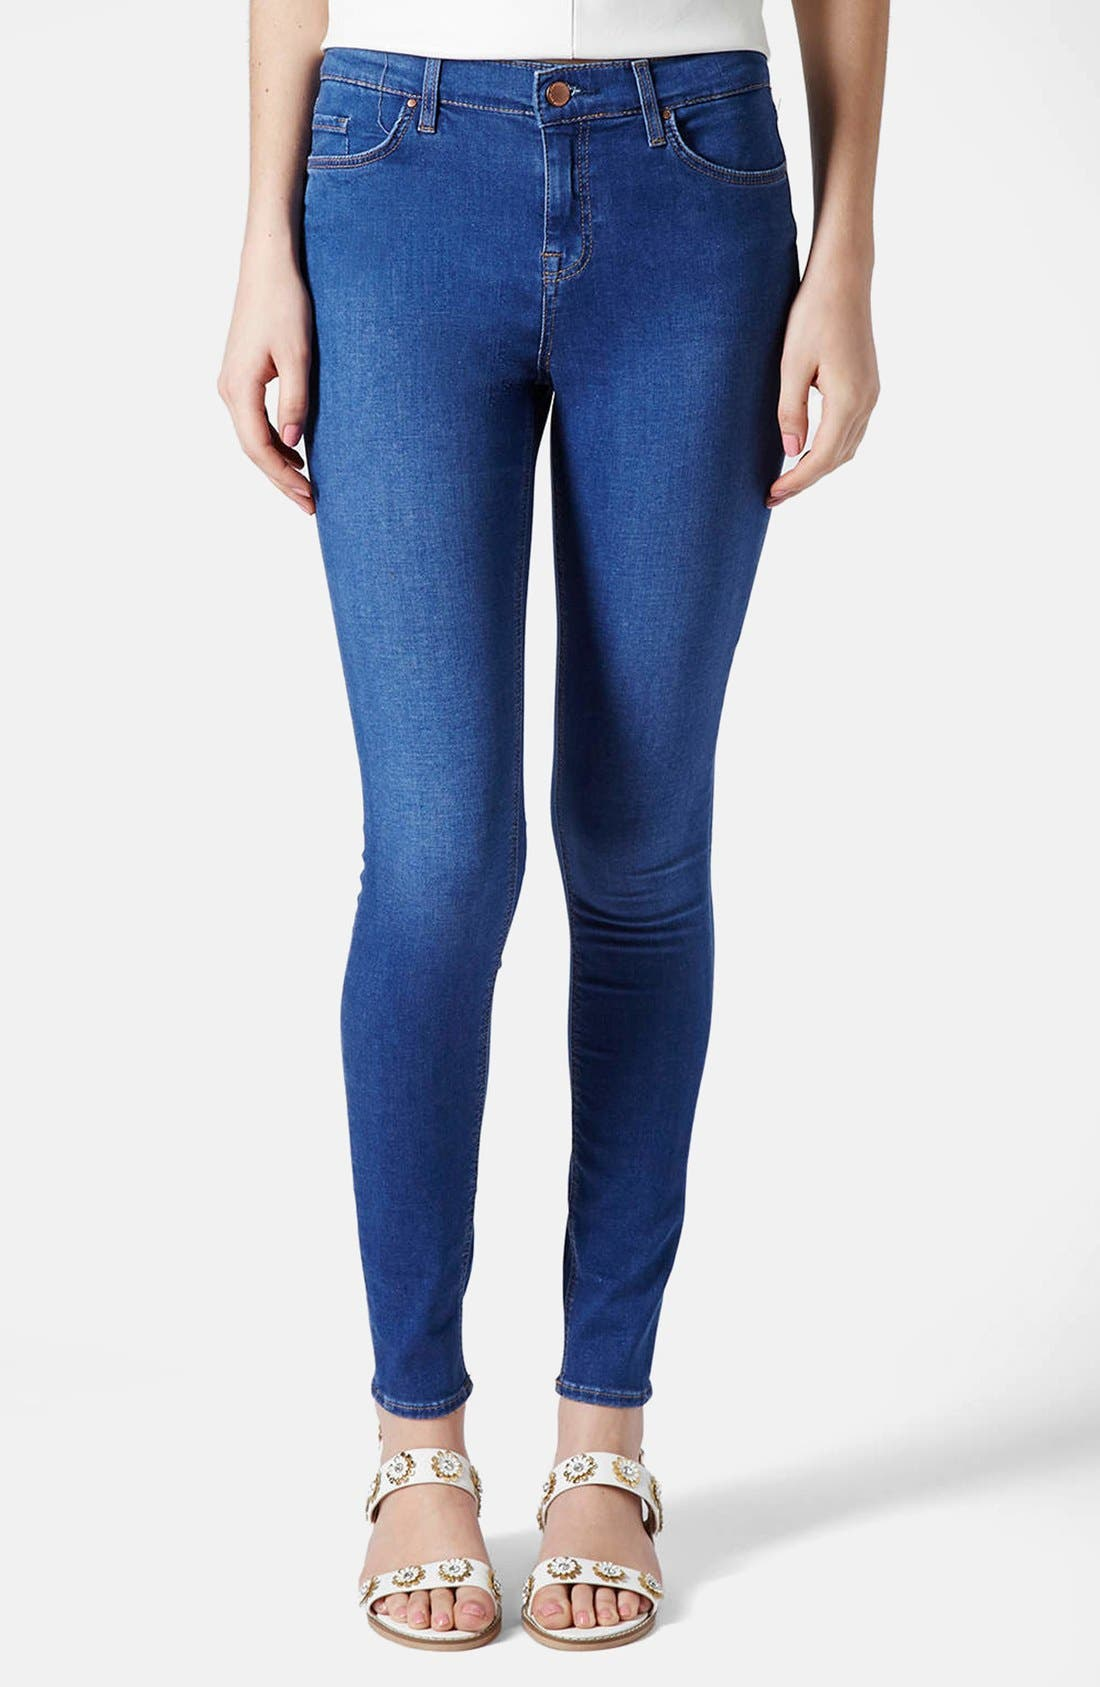 Alternate Image 1 Selected - Topshop 'Leigh' Ankle Skinny Jeans (Mid Denim)